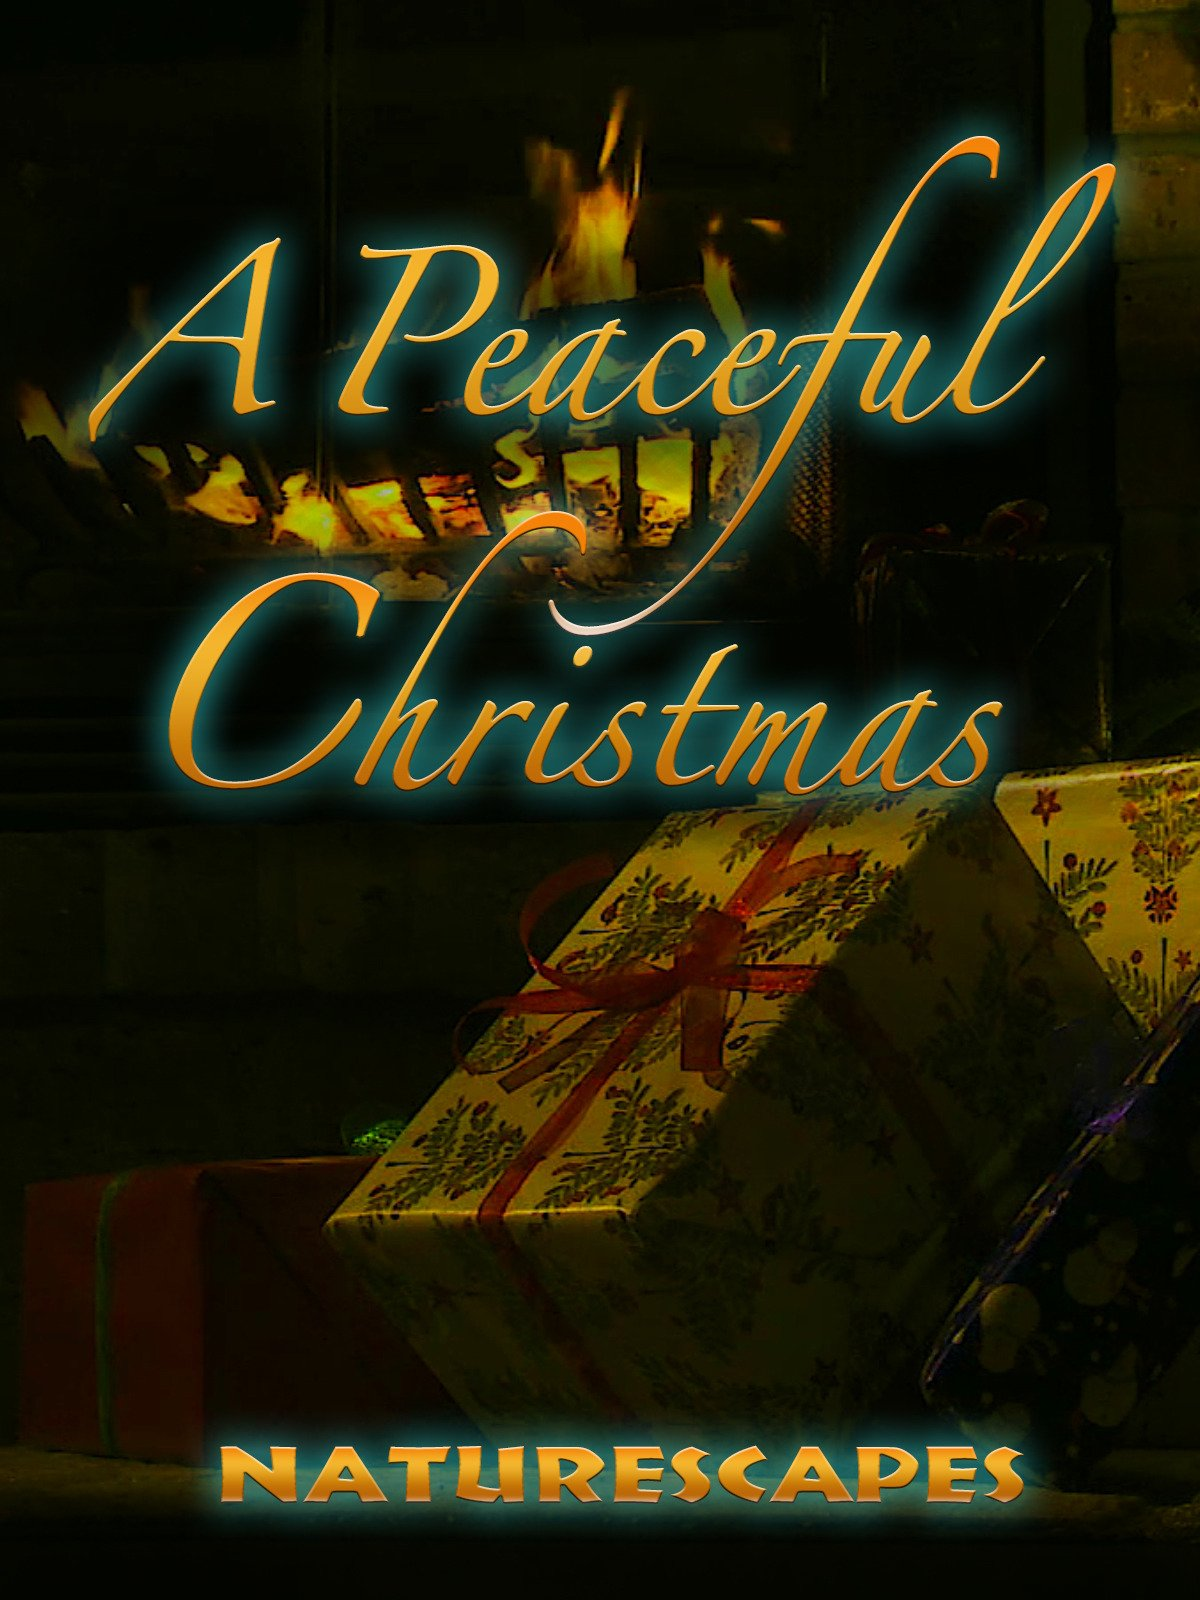 A Peaceful Christmas